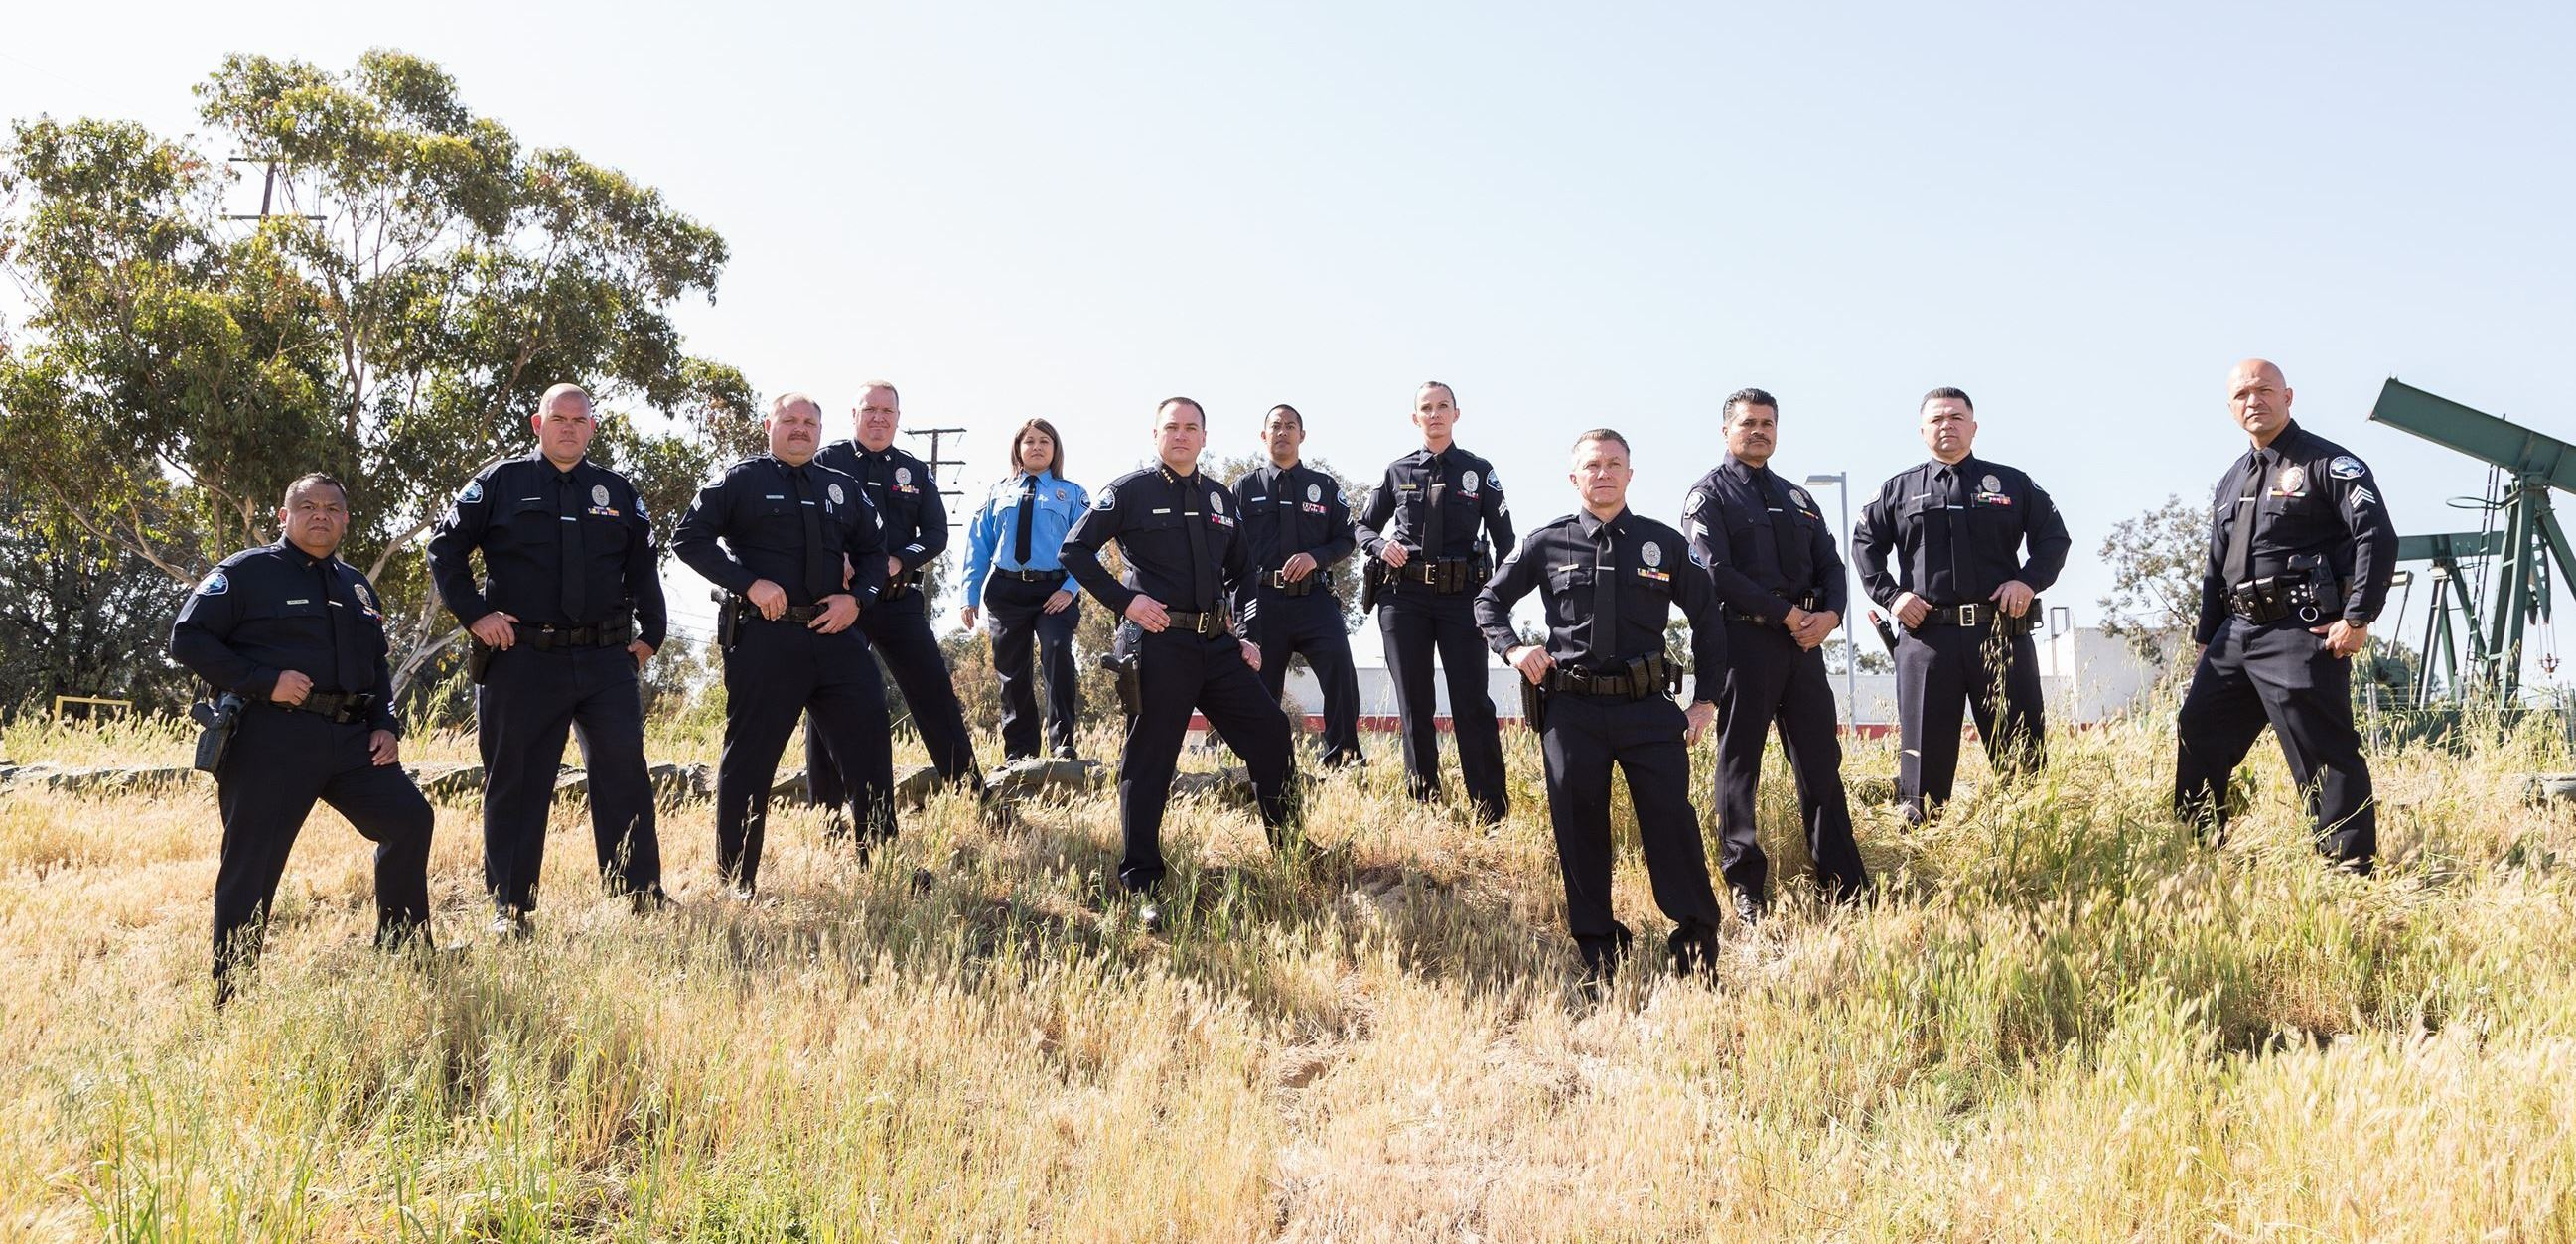 A group of police officers standing in tall grass